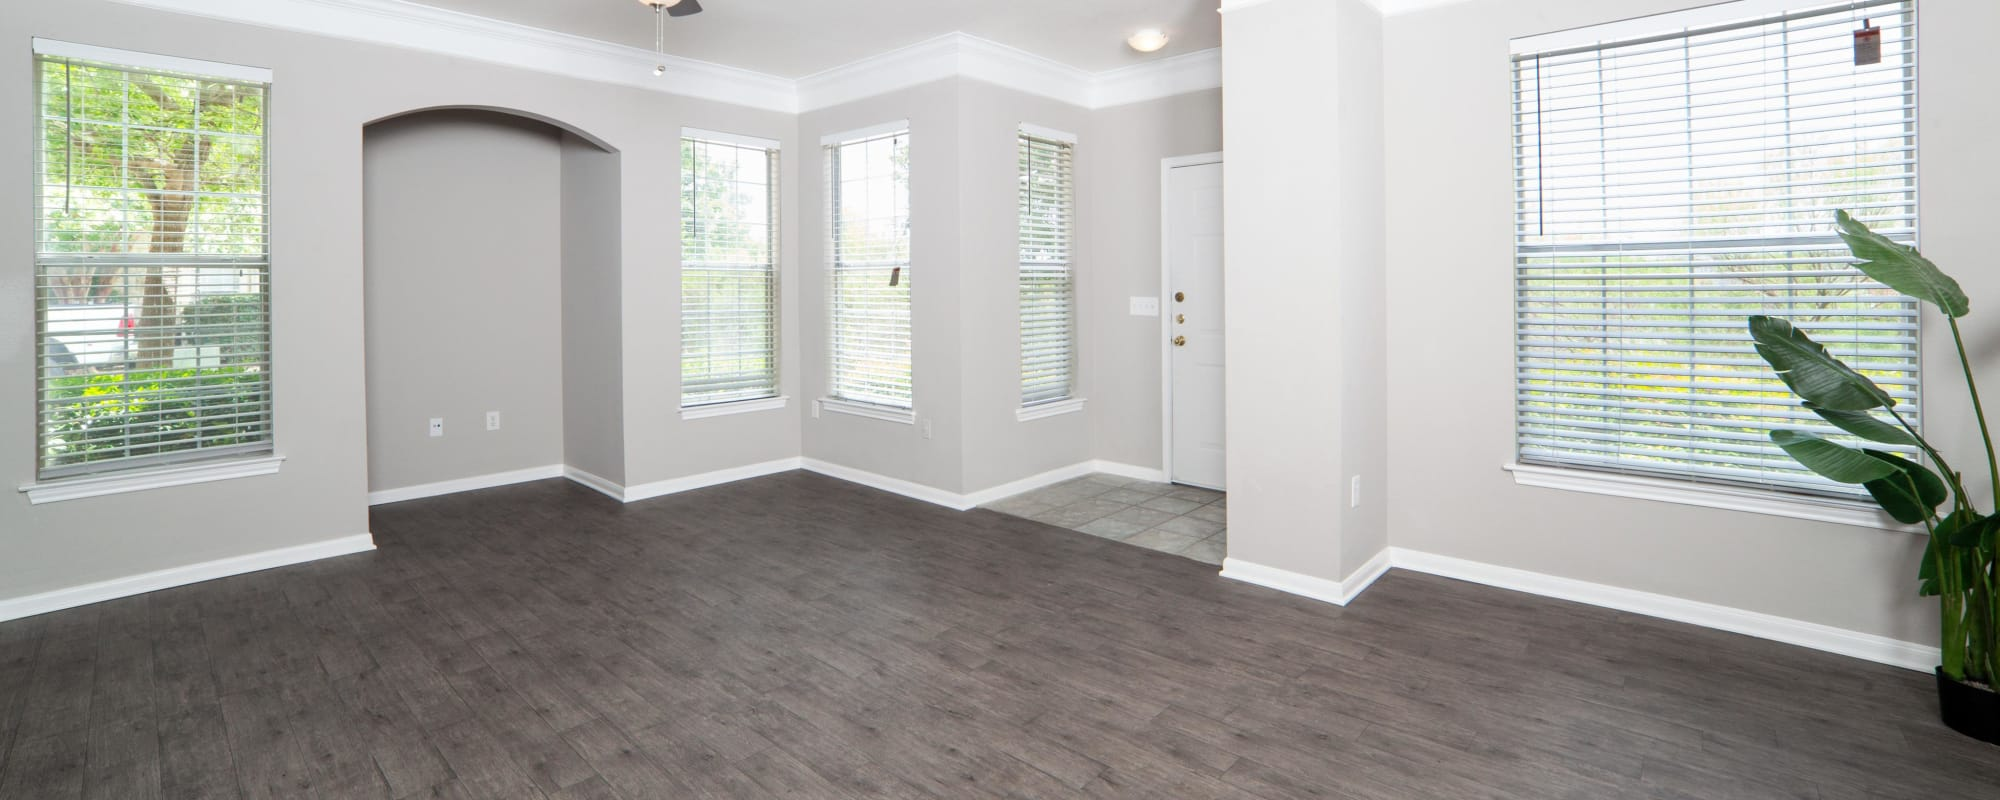 Spacious living room at The View at Encino Commons in San Antonio, Texas